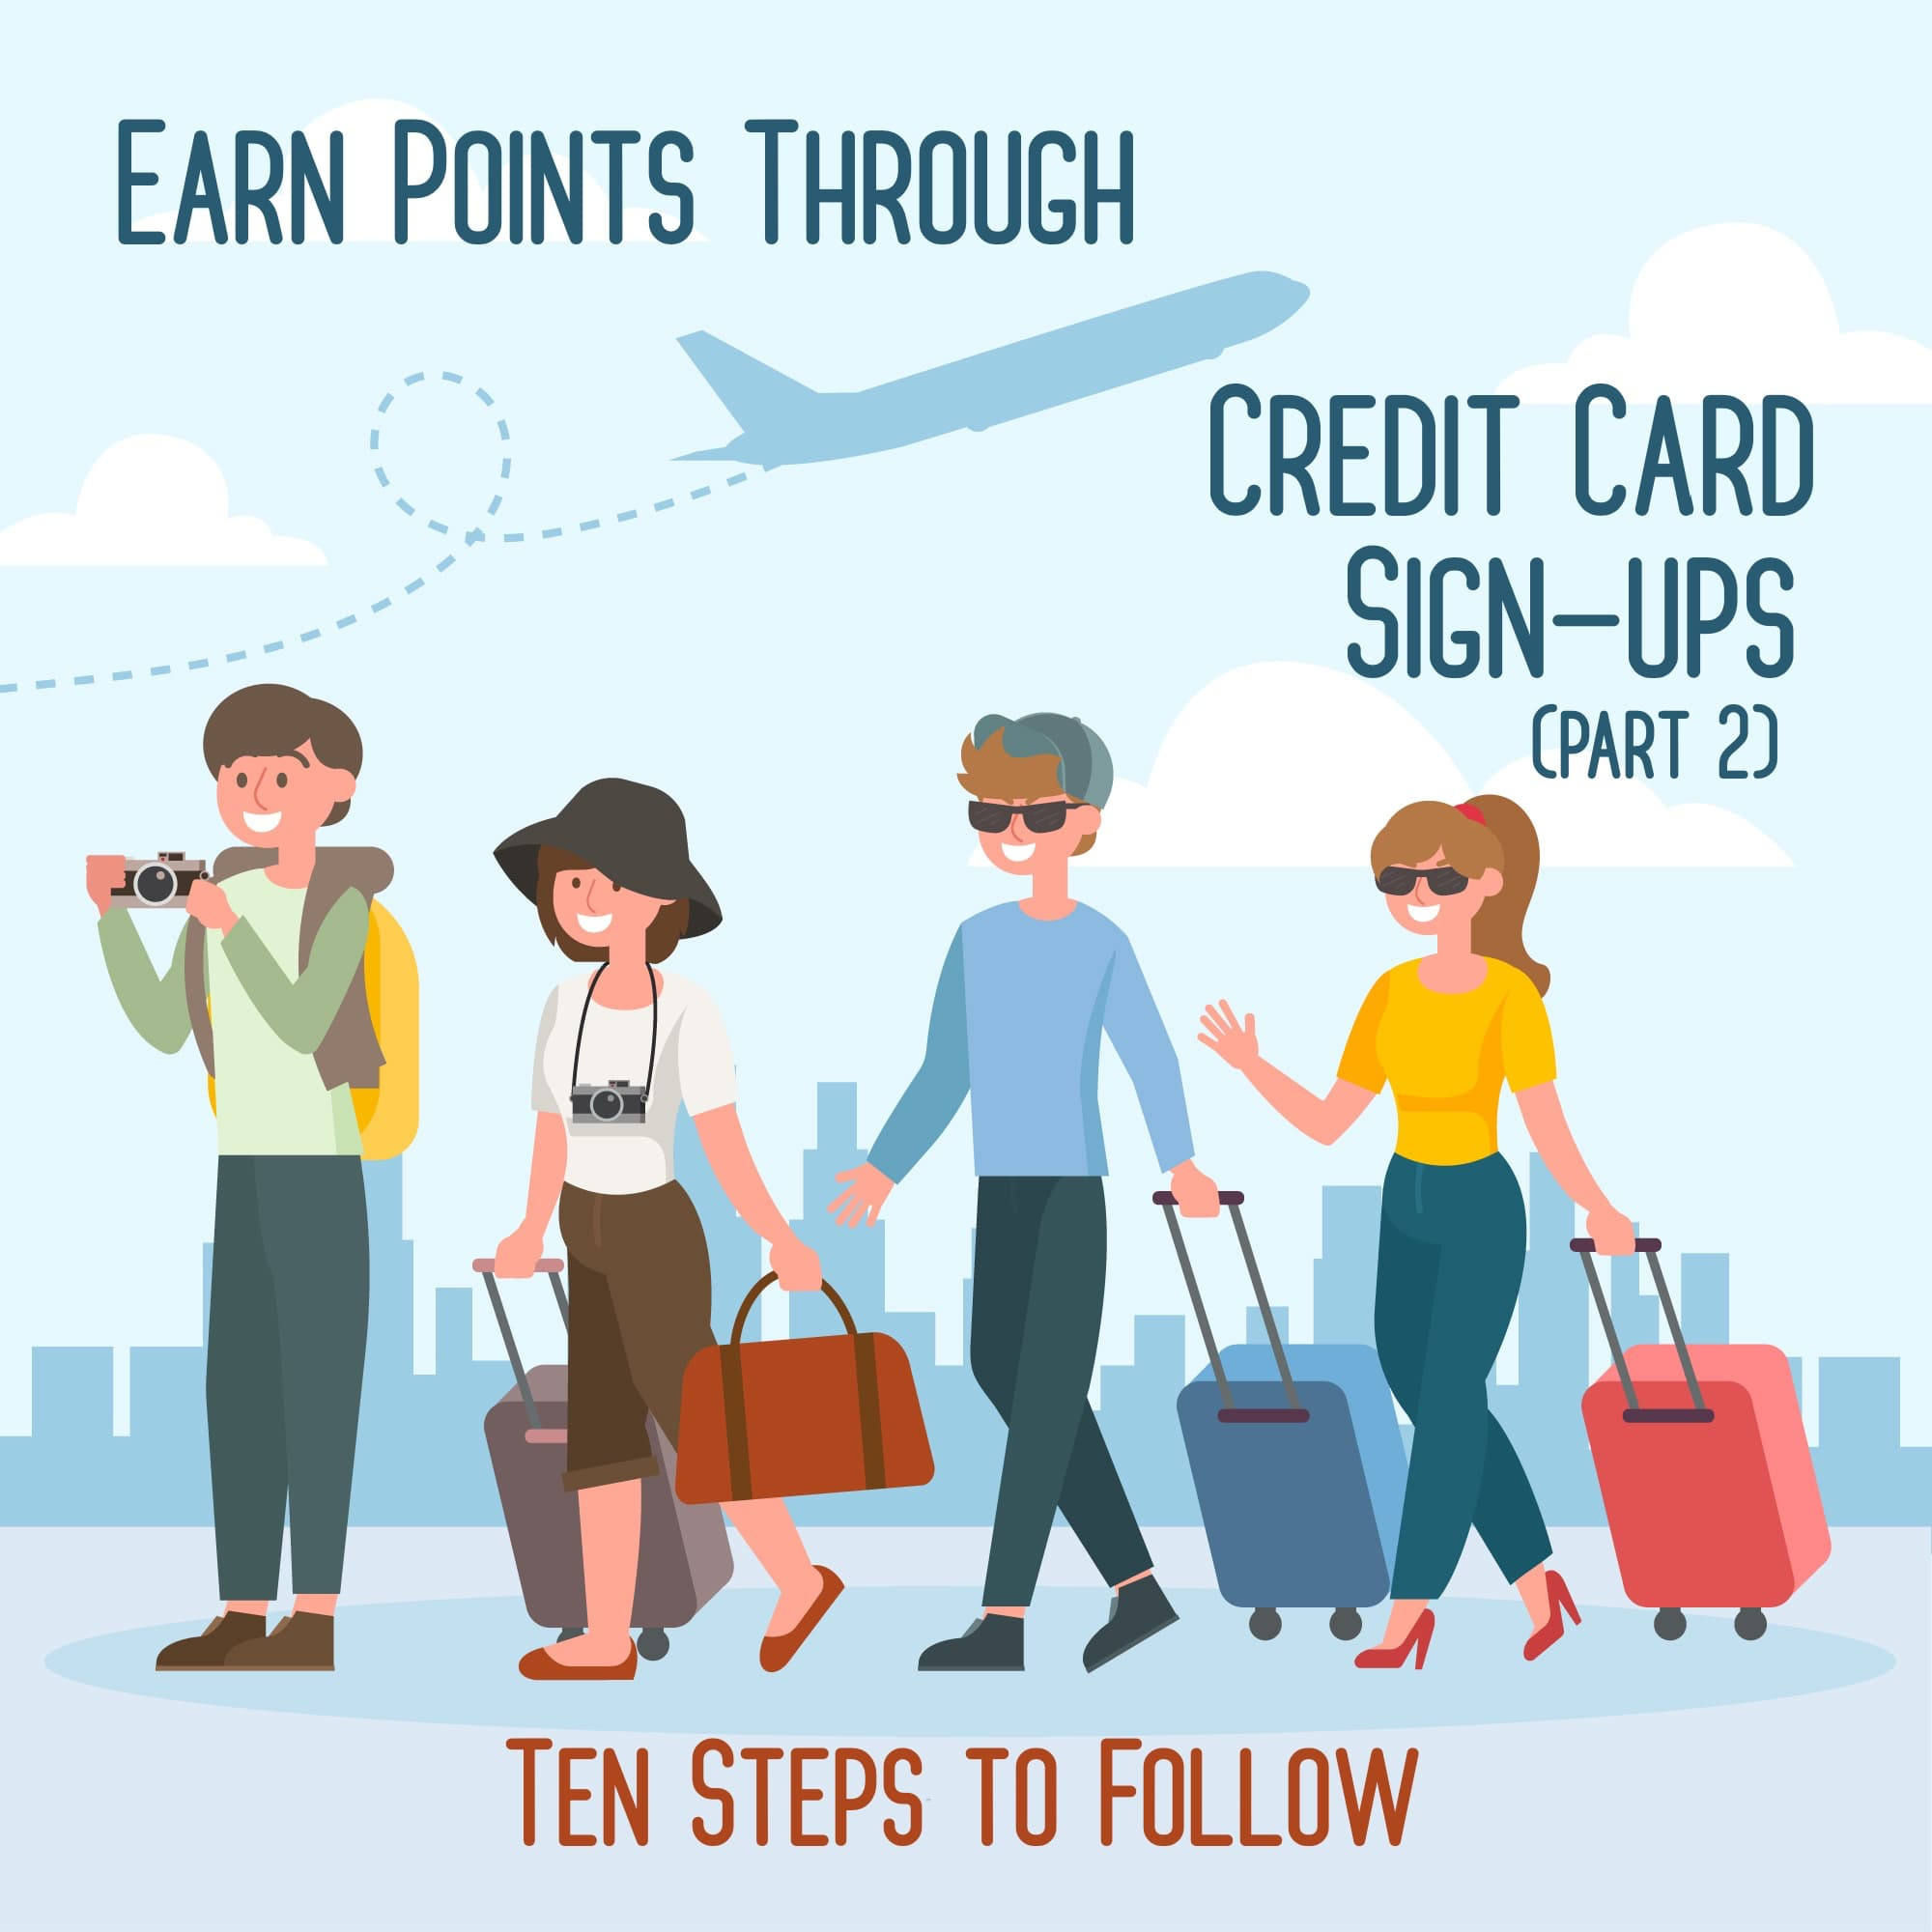 Earn Points Through Credit Card Sign Ups – Part 2: Ten Steps to Follow